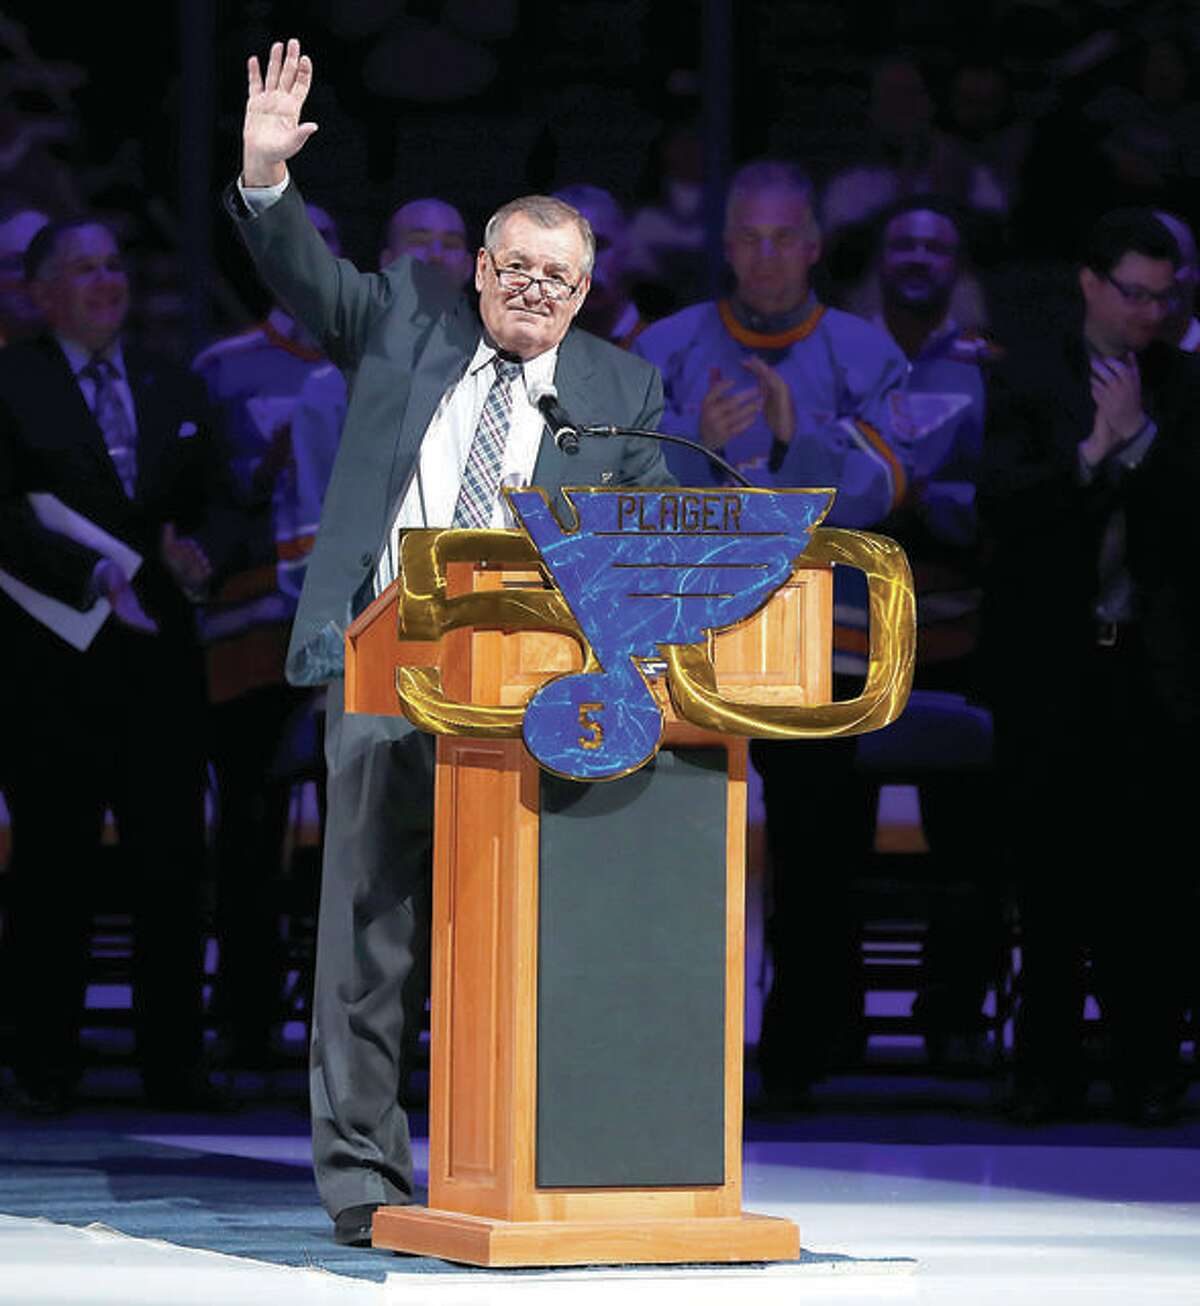 Former Blues player Bob Plager waves to fans while speaking during a ceremony to retire his number before a 2017 game between the Blues and the Toronto Maple Leafs. Plager, 78, was killed Wednesday afternoon in a car crash on Interstate 64 in St. Louis.